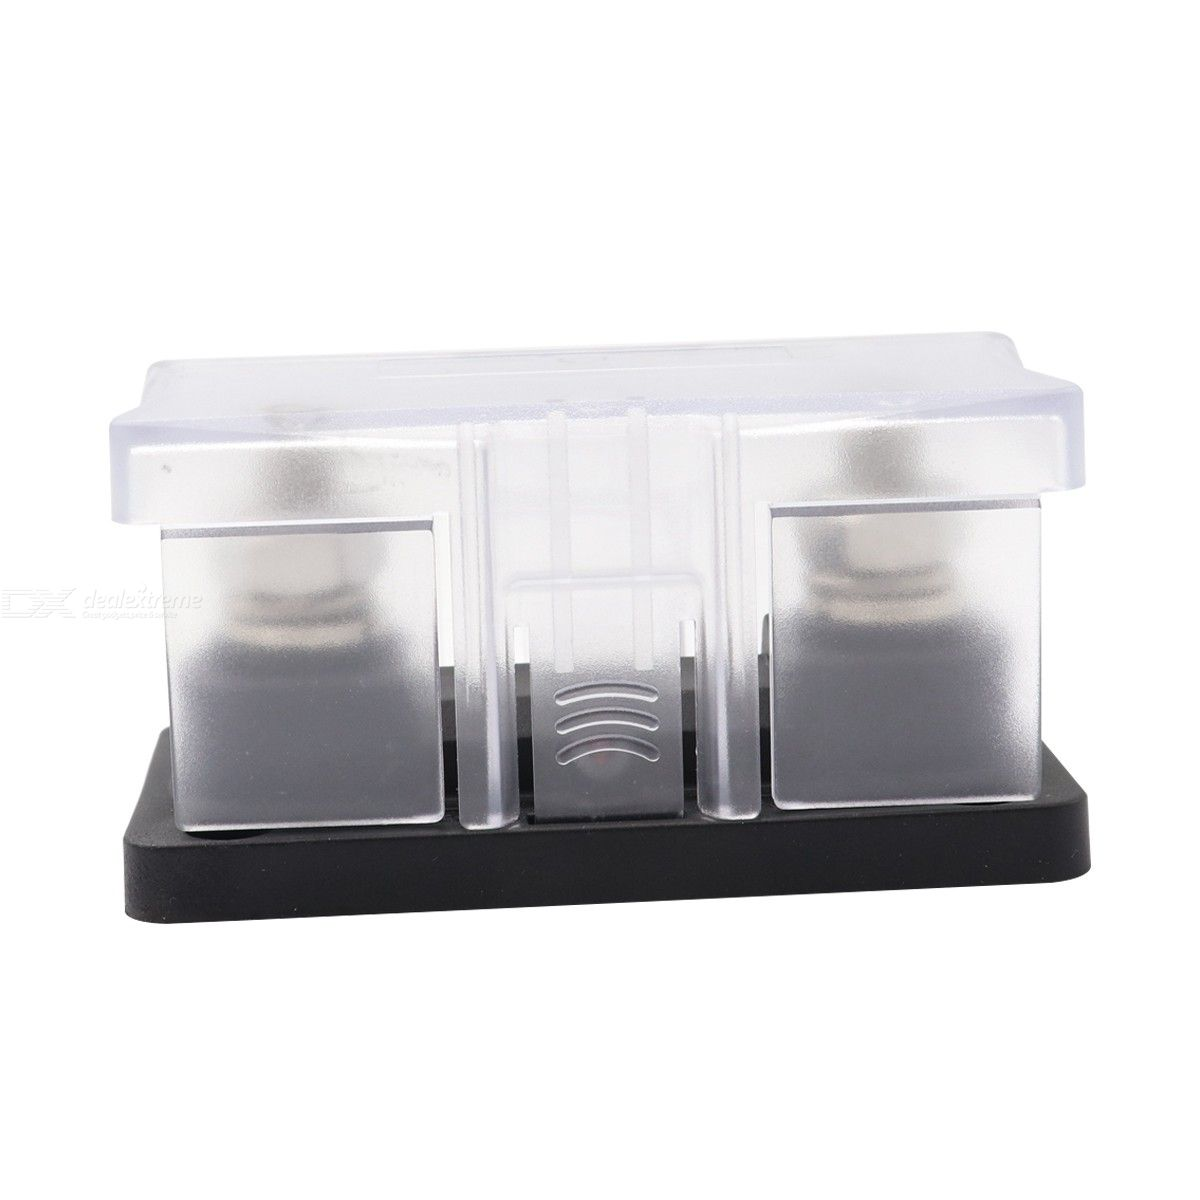 hight resolution of f4332rv ship fuse holder high current anl fuse holder fuse box with led indicator